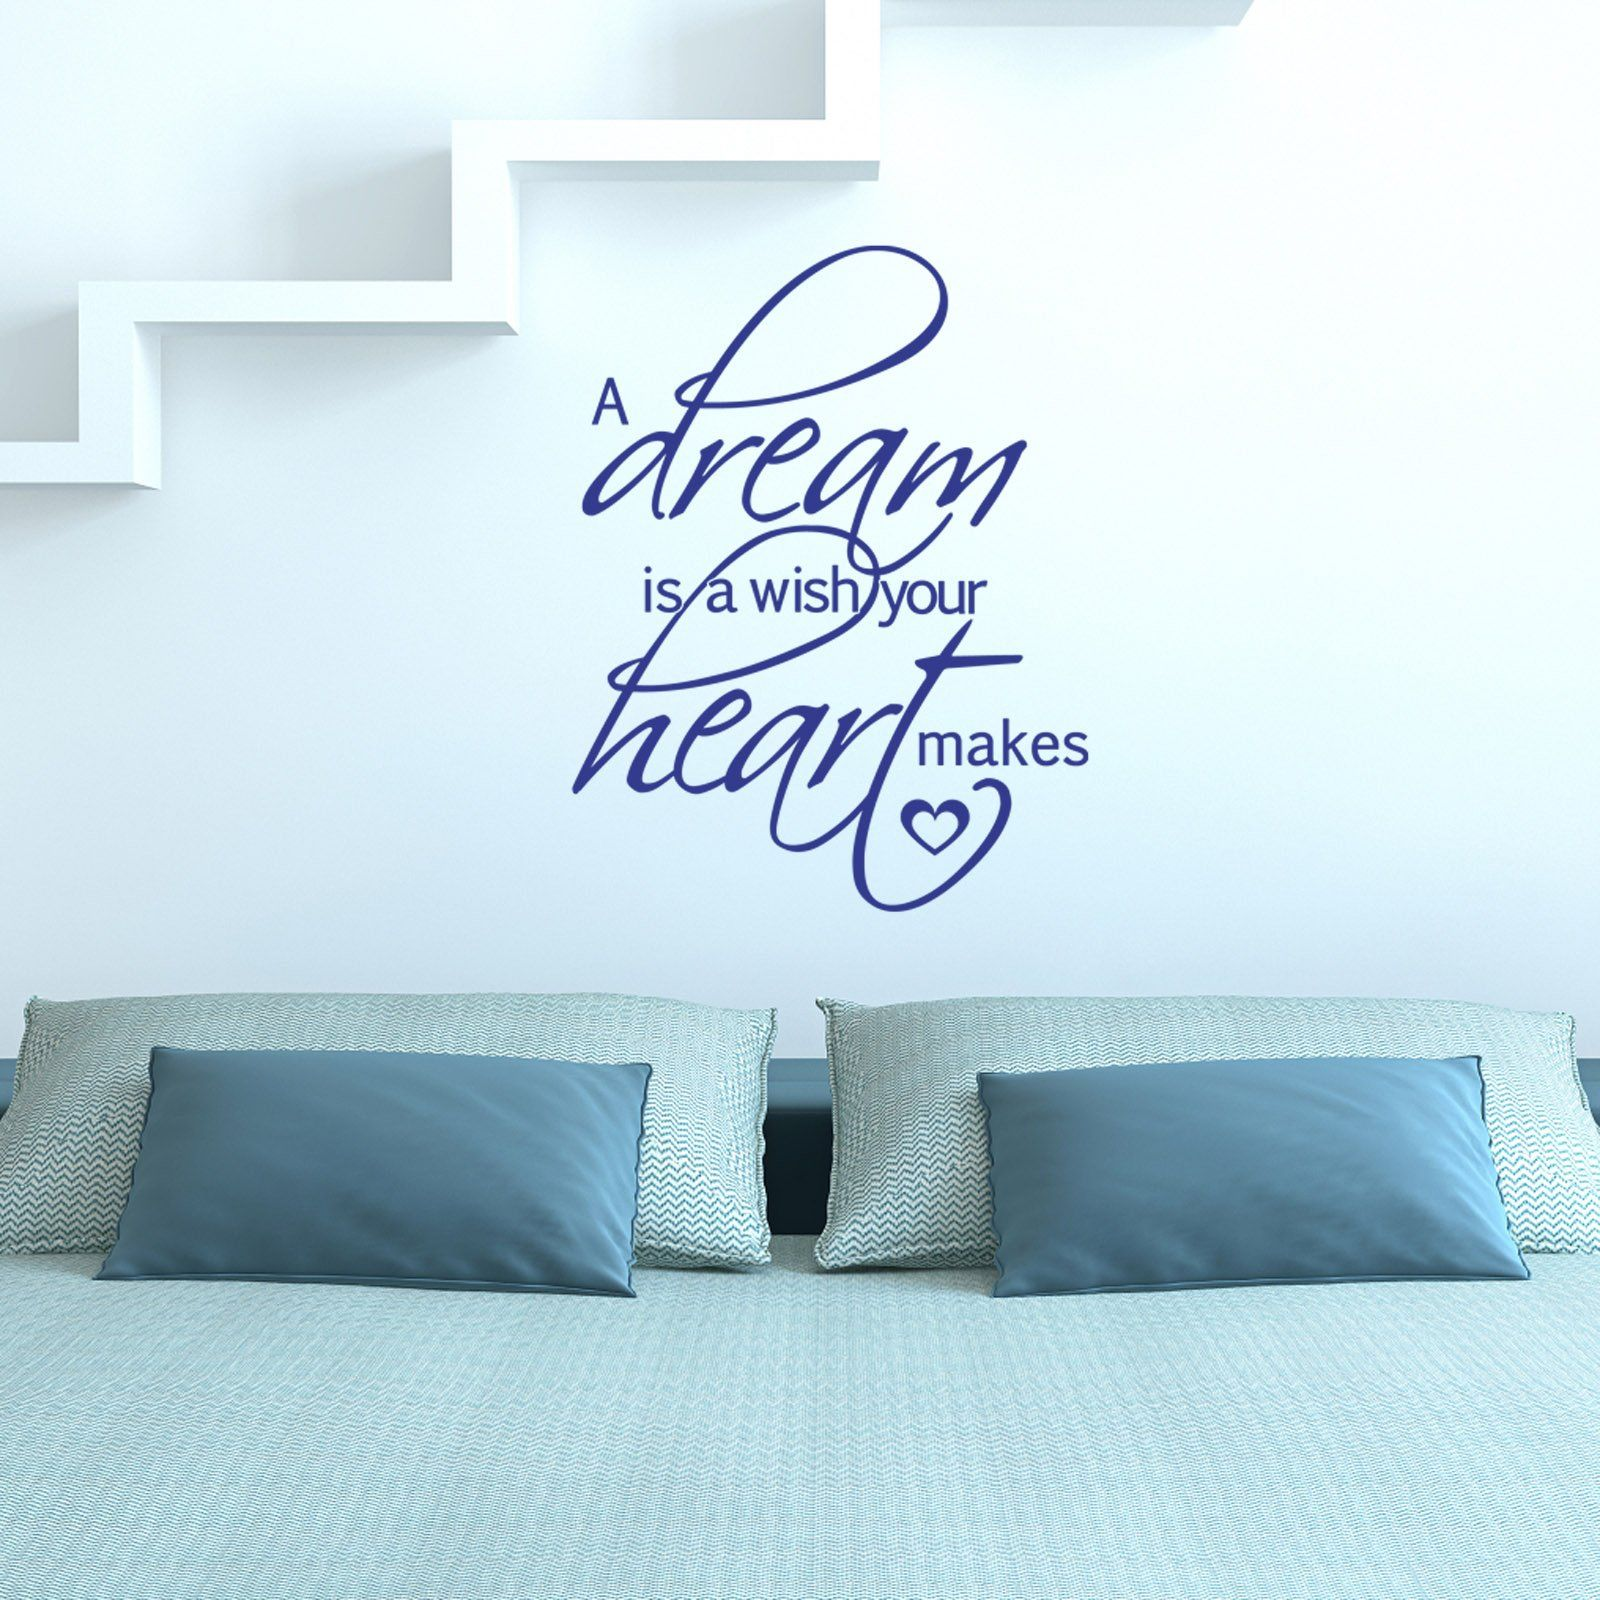 a dream is a wish your heart makes wall sticker decal amazon co